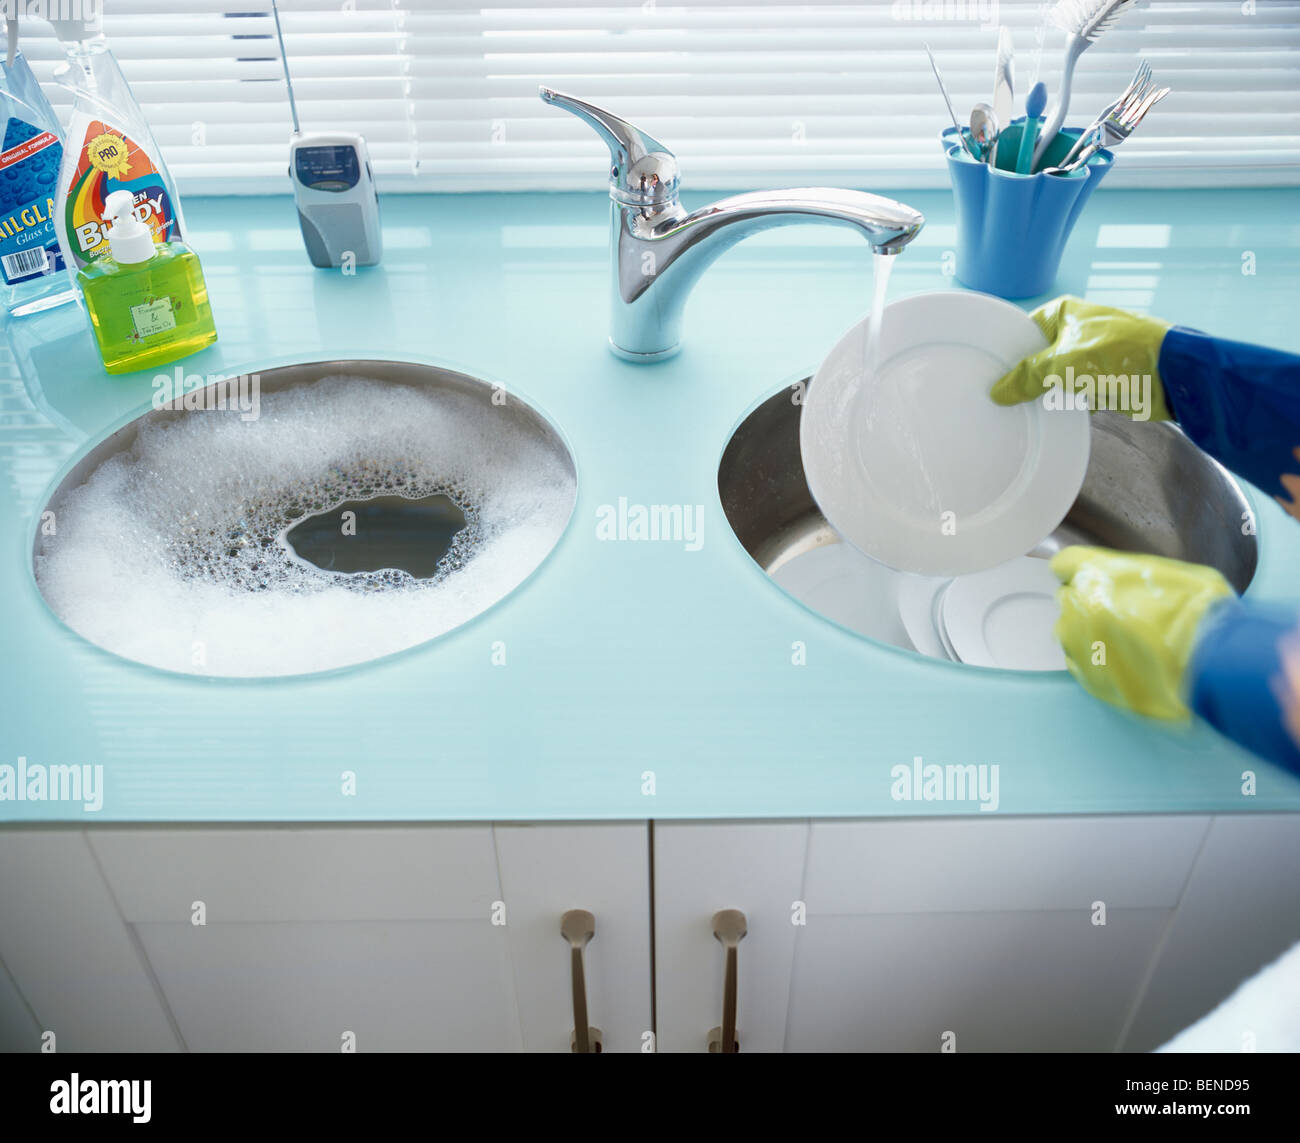 Double Kitchen Sink Stock Photos & Double Kitchen Sink Stock Images ...